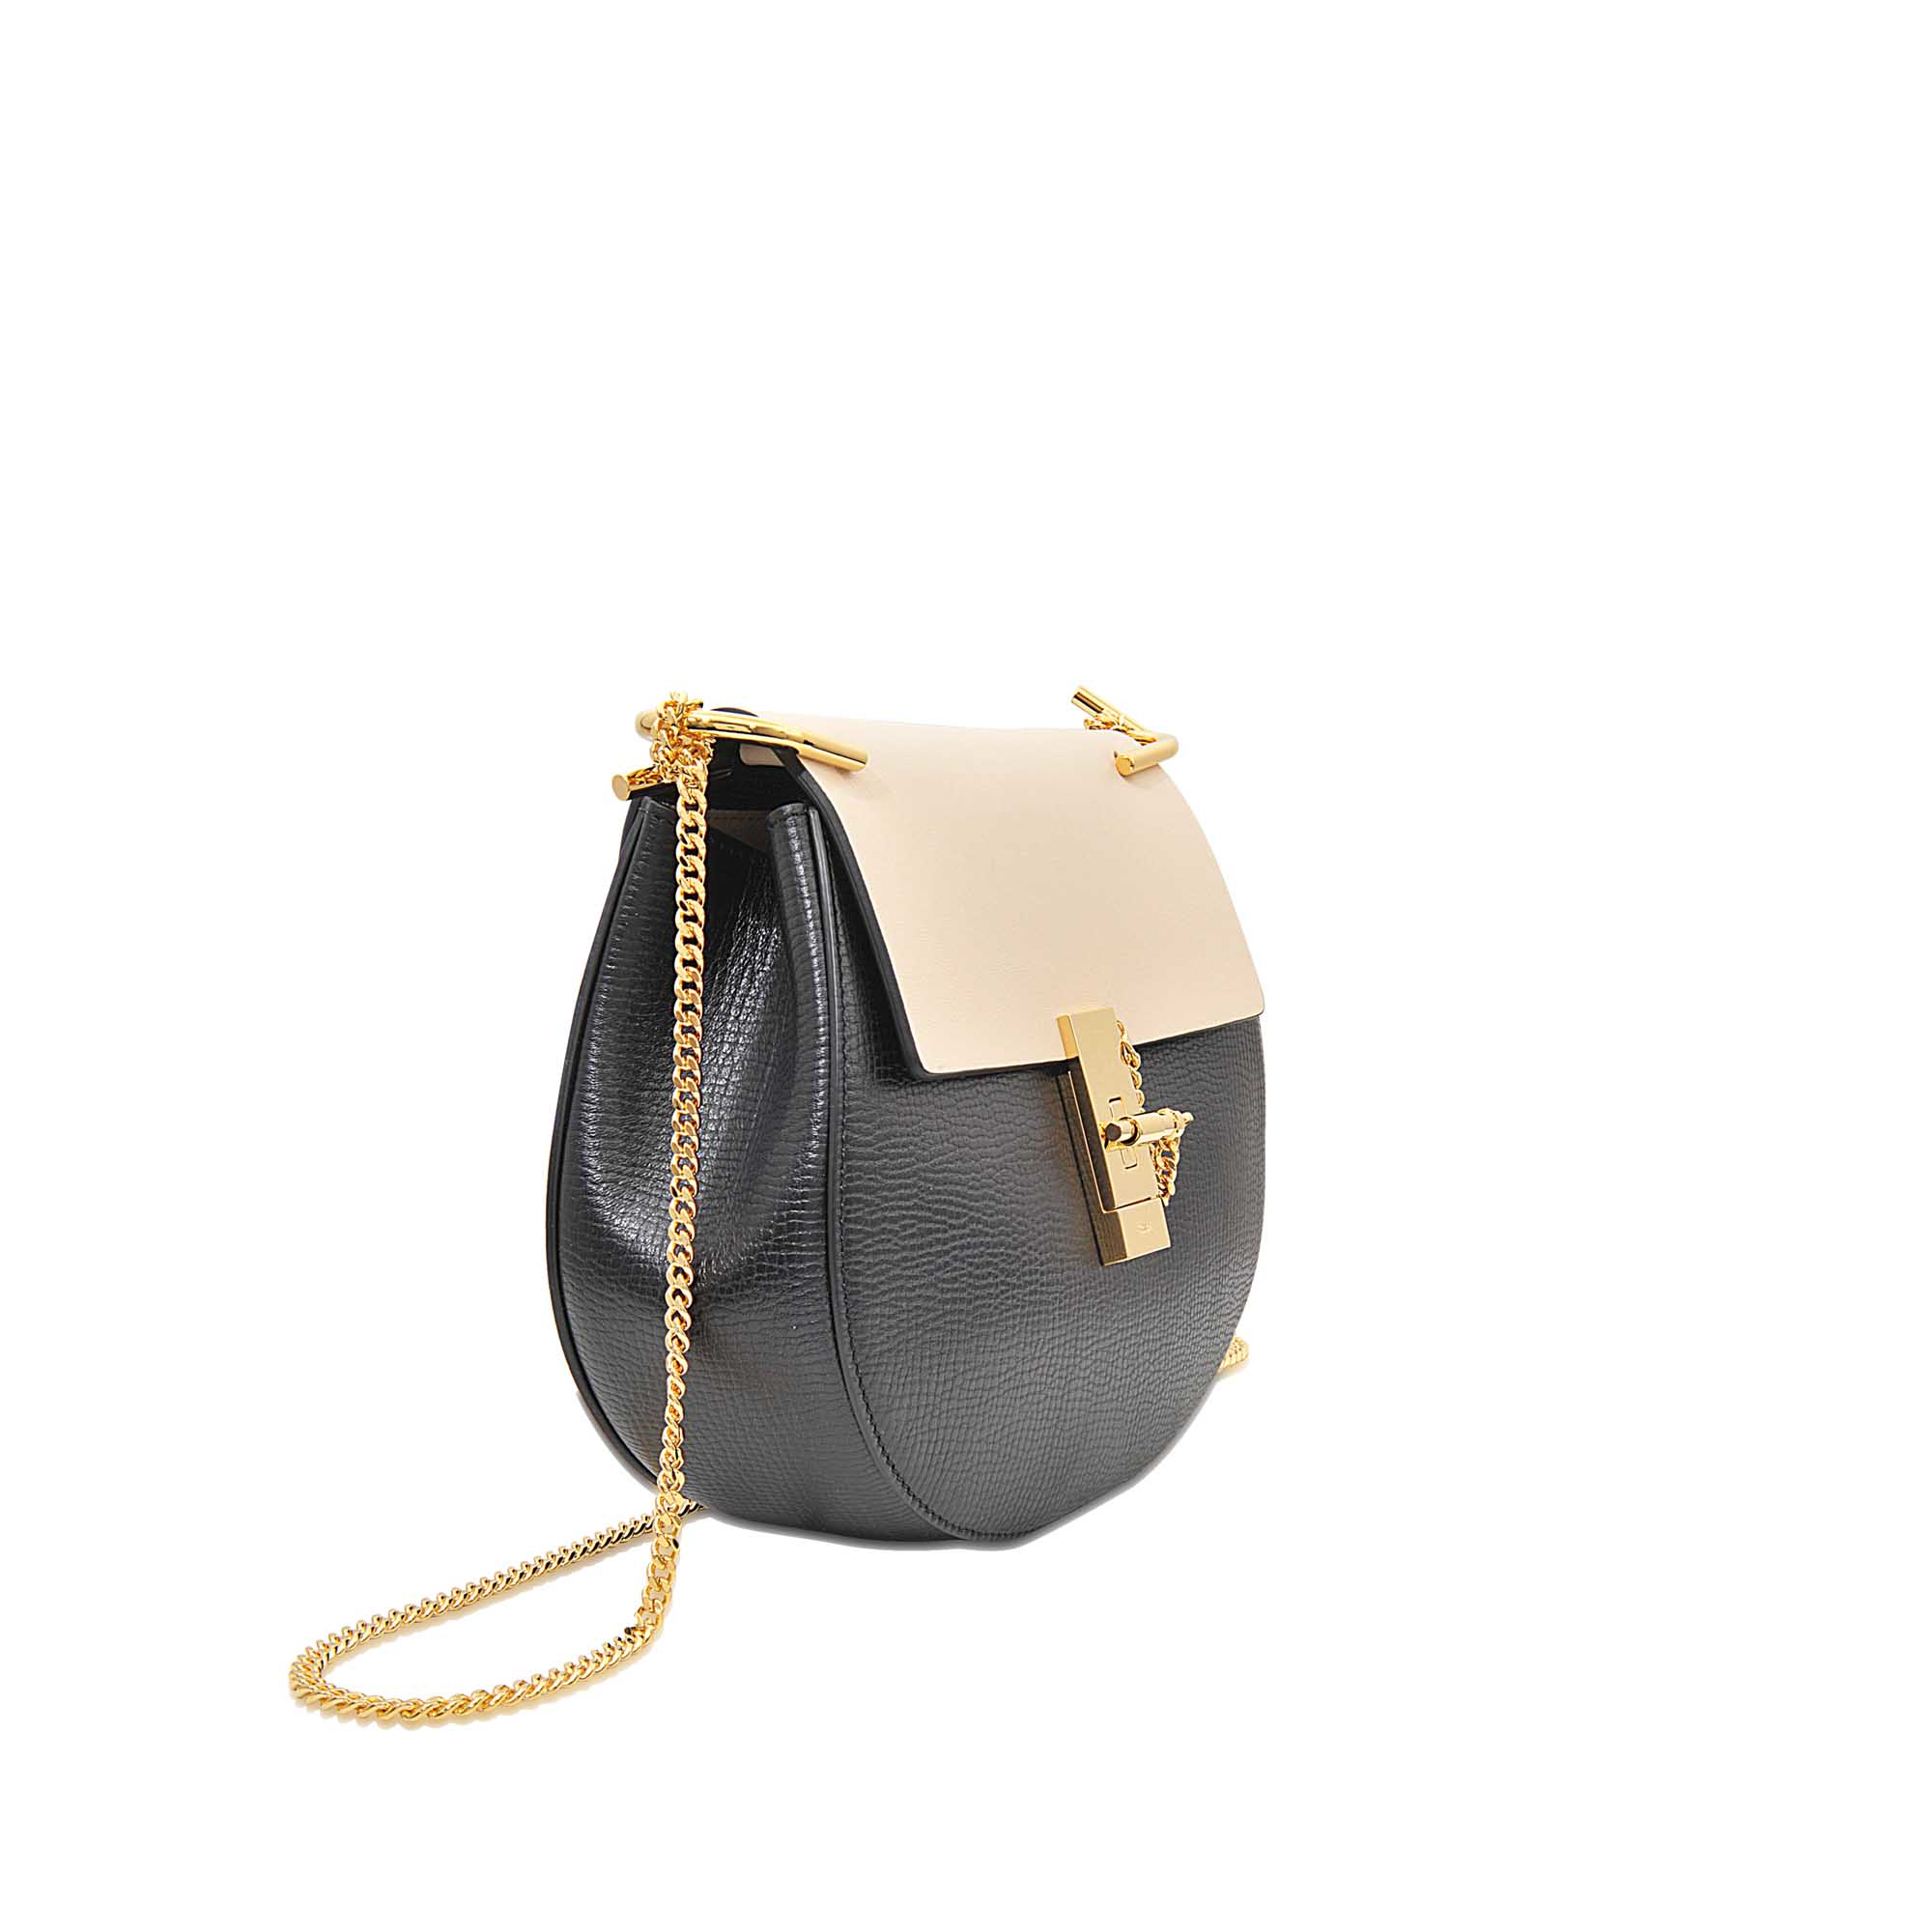 DREW BAG IN EMBROIDERED GRAINED GOATSKIN